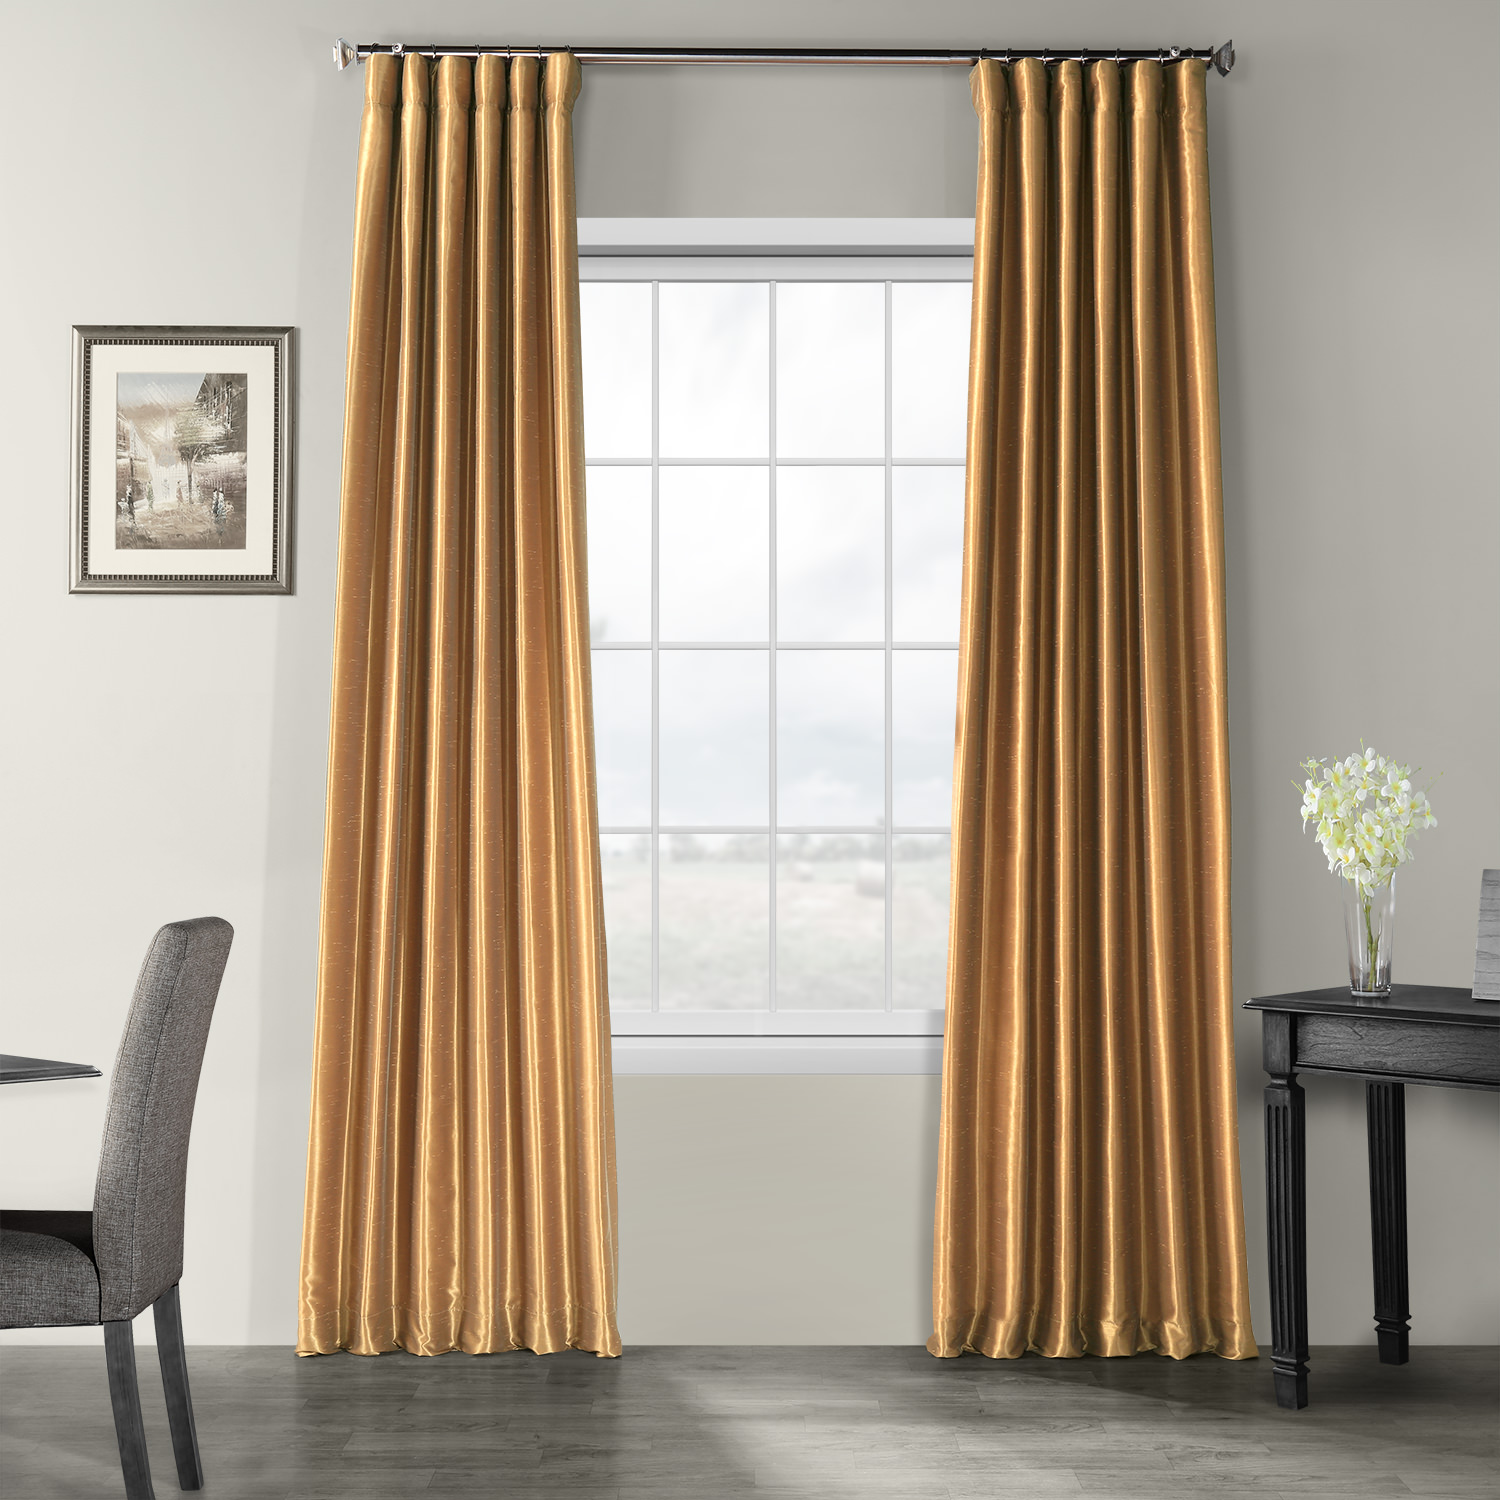 Flax Gold Vintage Textured Faux Dupioni Silk Curtain